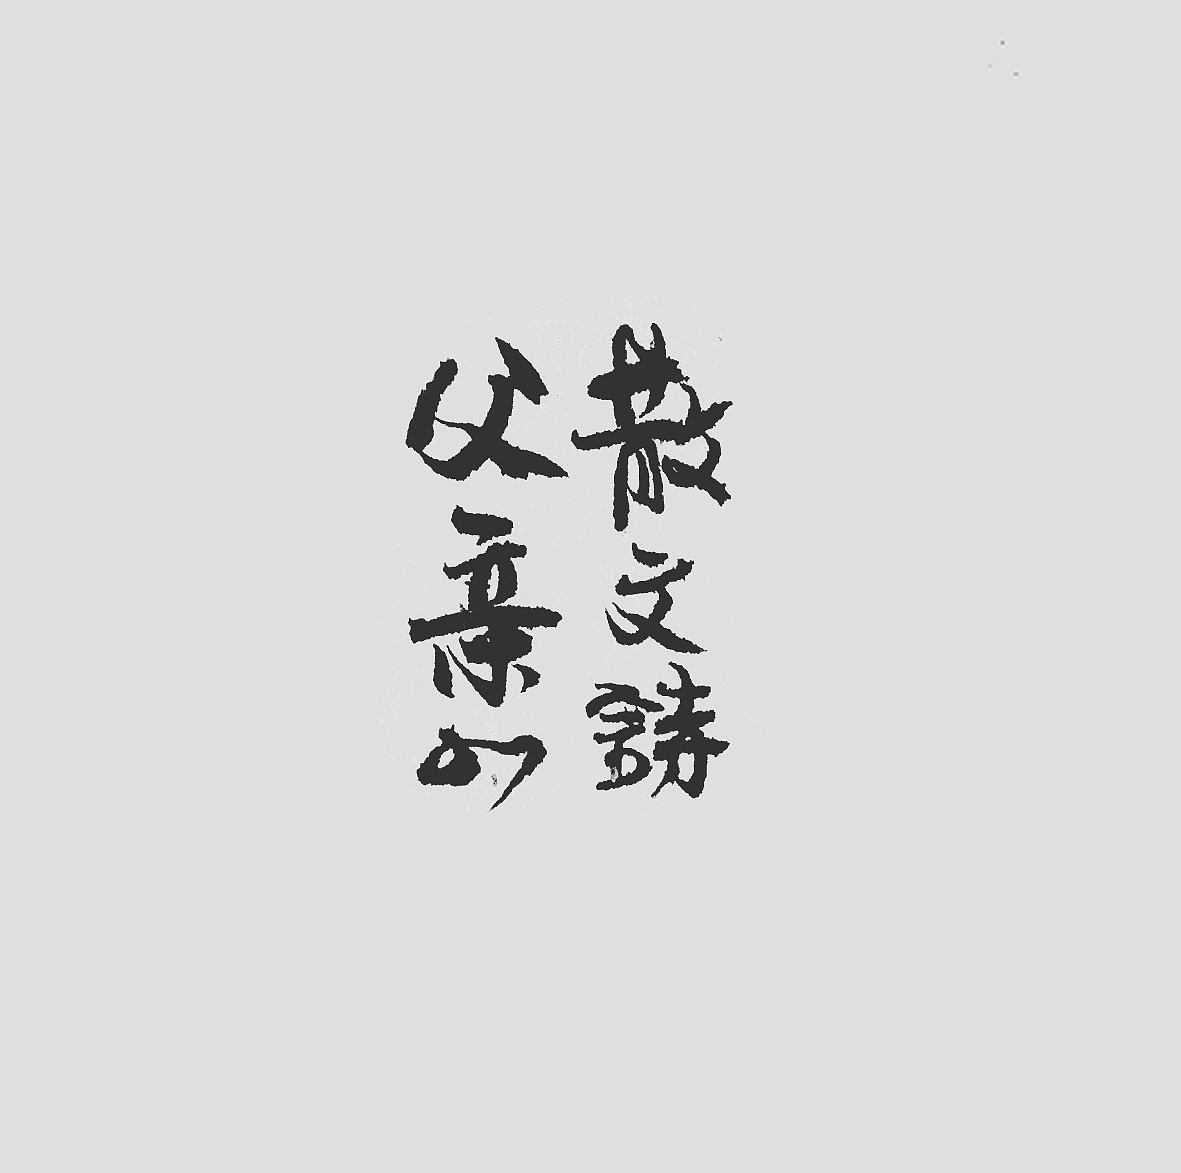 chinesefontdesign.com 2017 08 02 14 02 55 632031 21P The most cool and heroic Chinese brush calligraphy